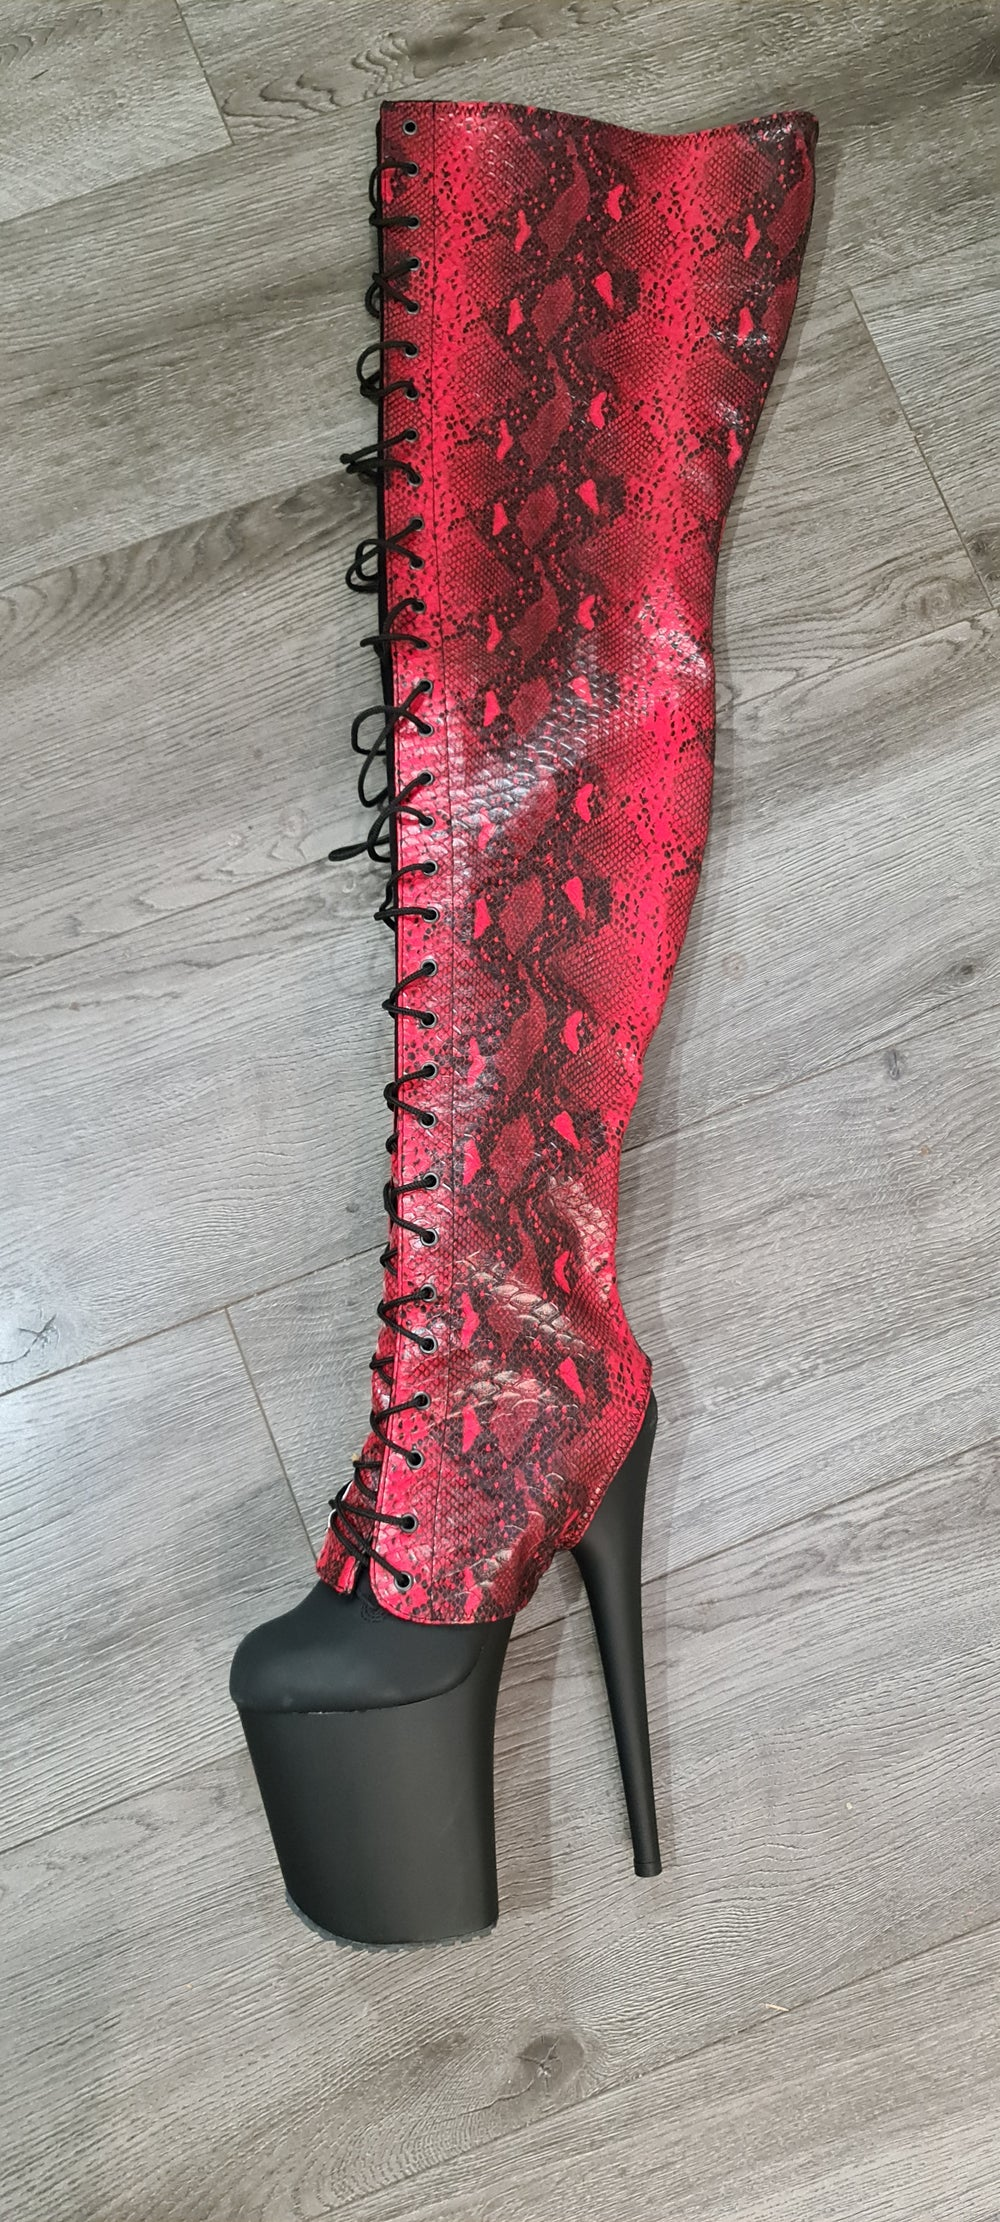 Z PLANET Thigh High Bootsleeves - Red Snake